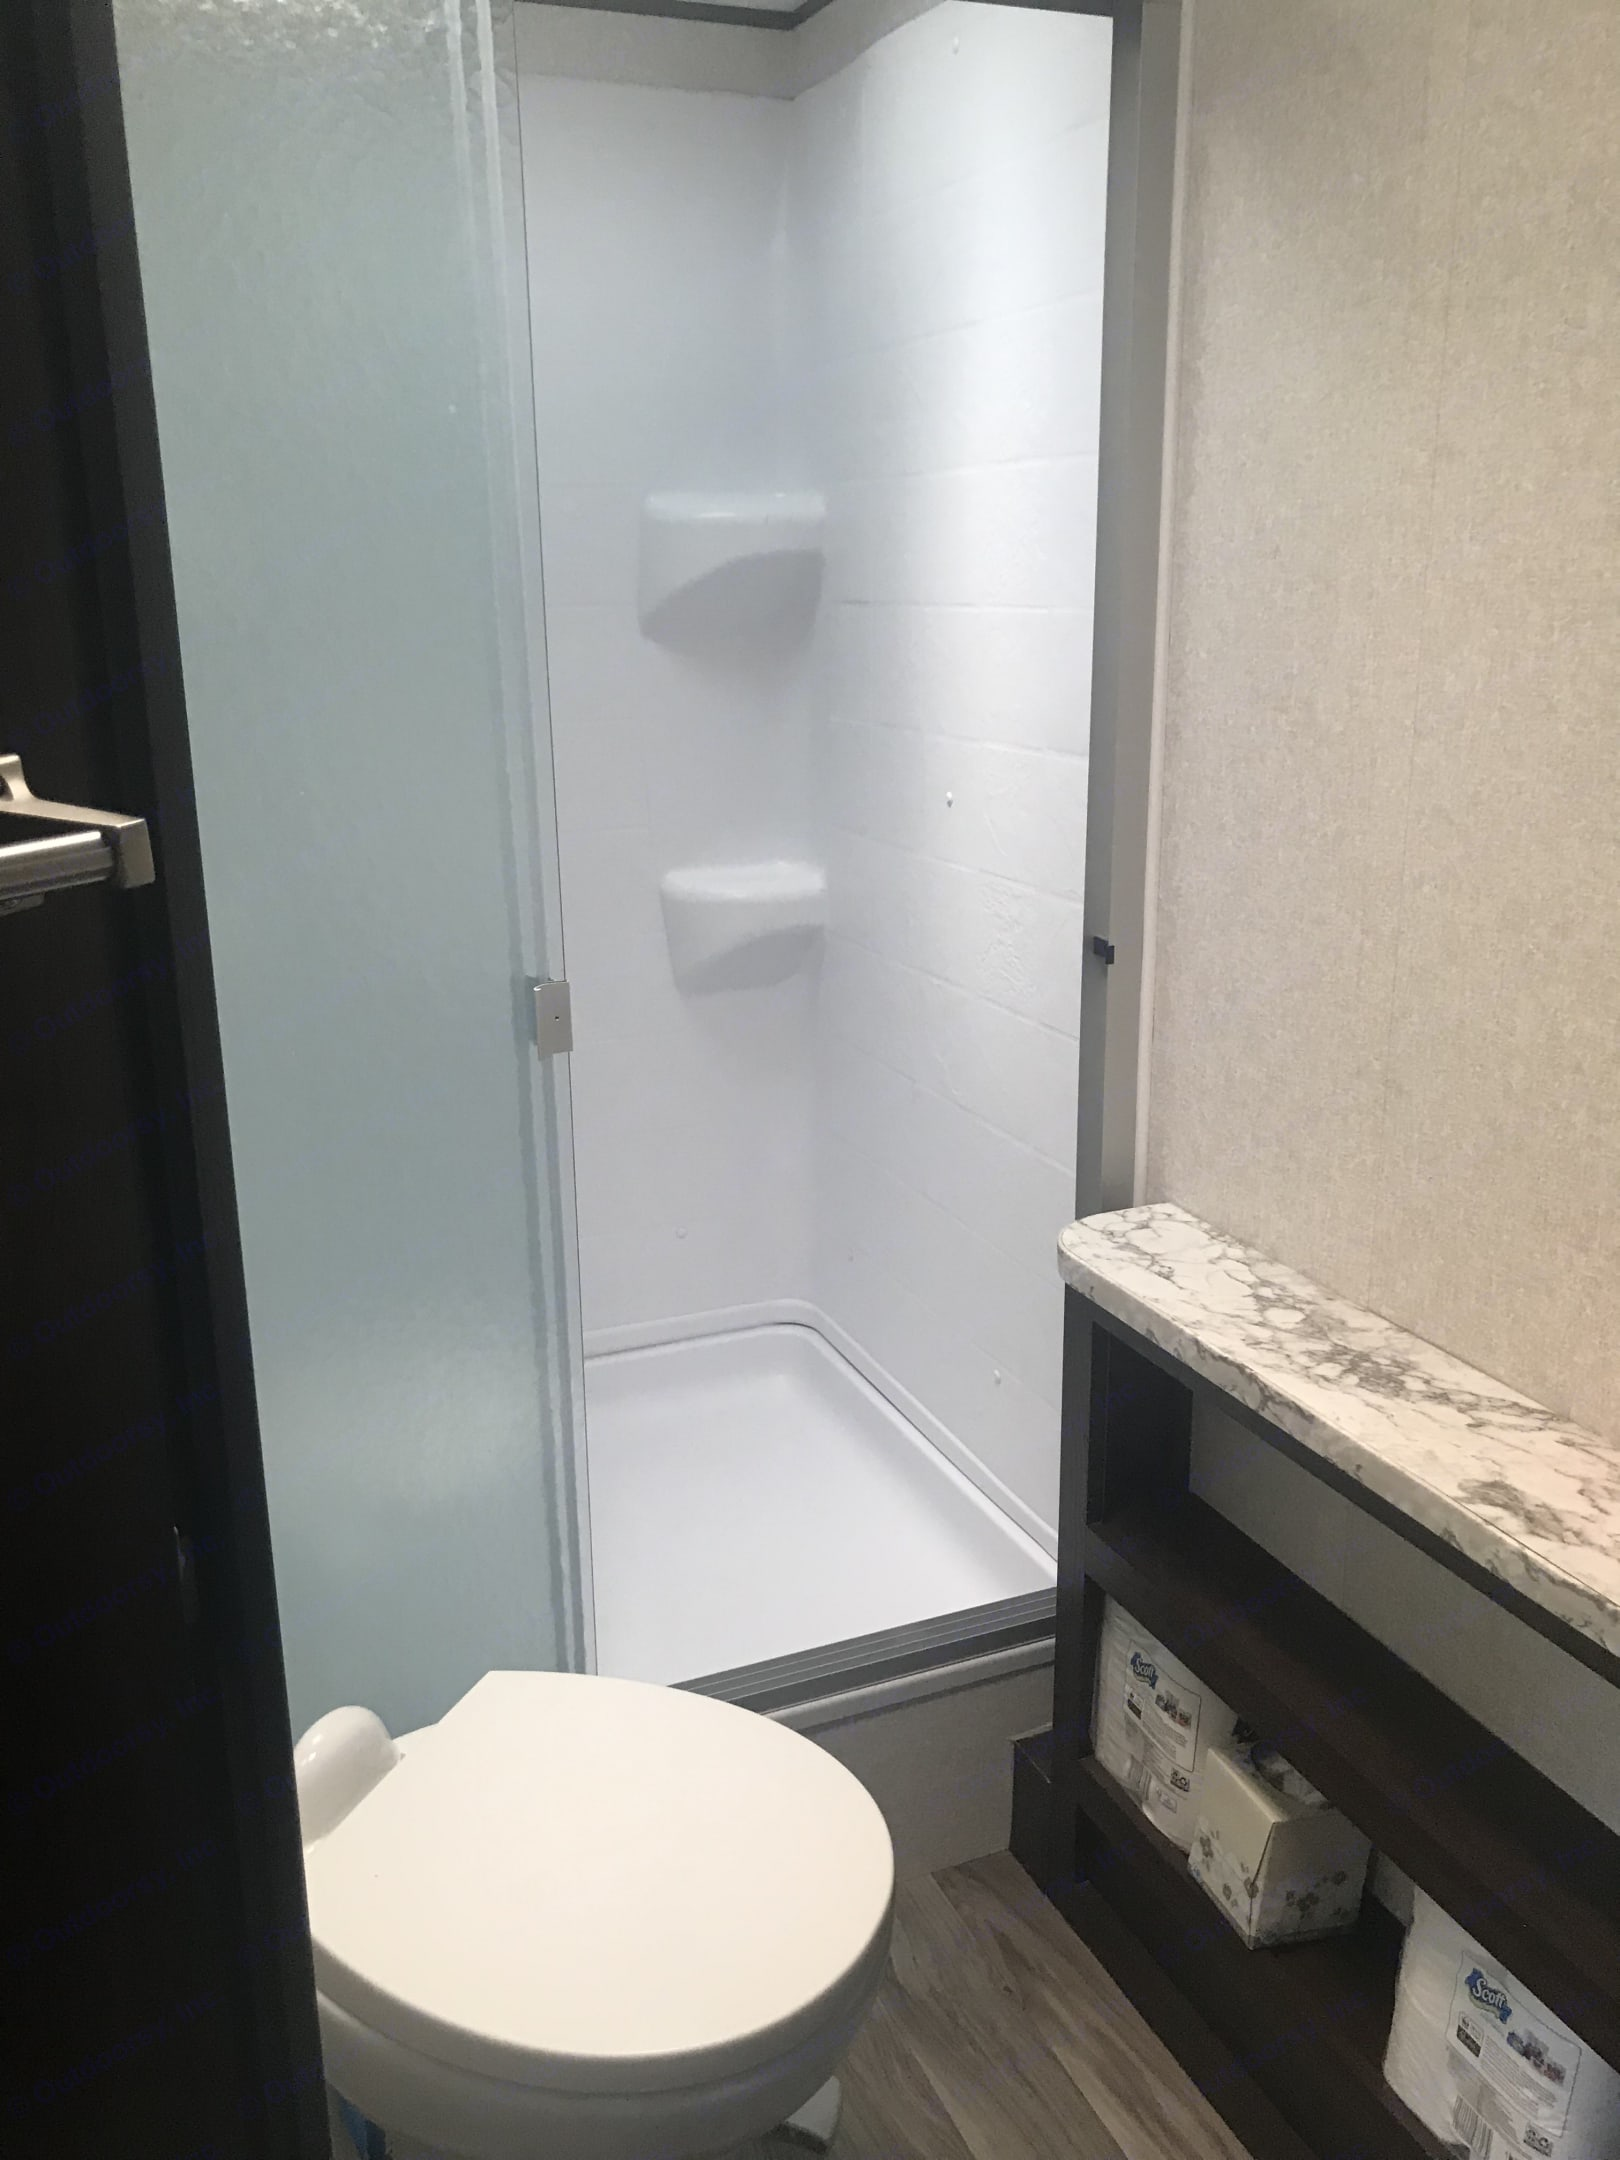 Room to move in this shower, no cramped space here..... Jayco Jay Flight 2018